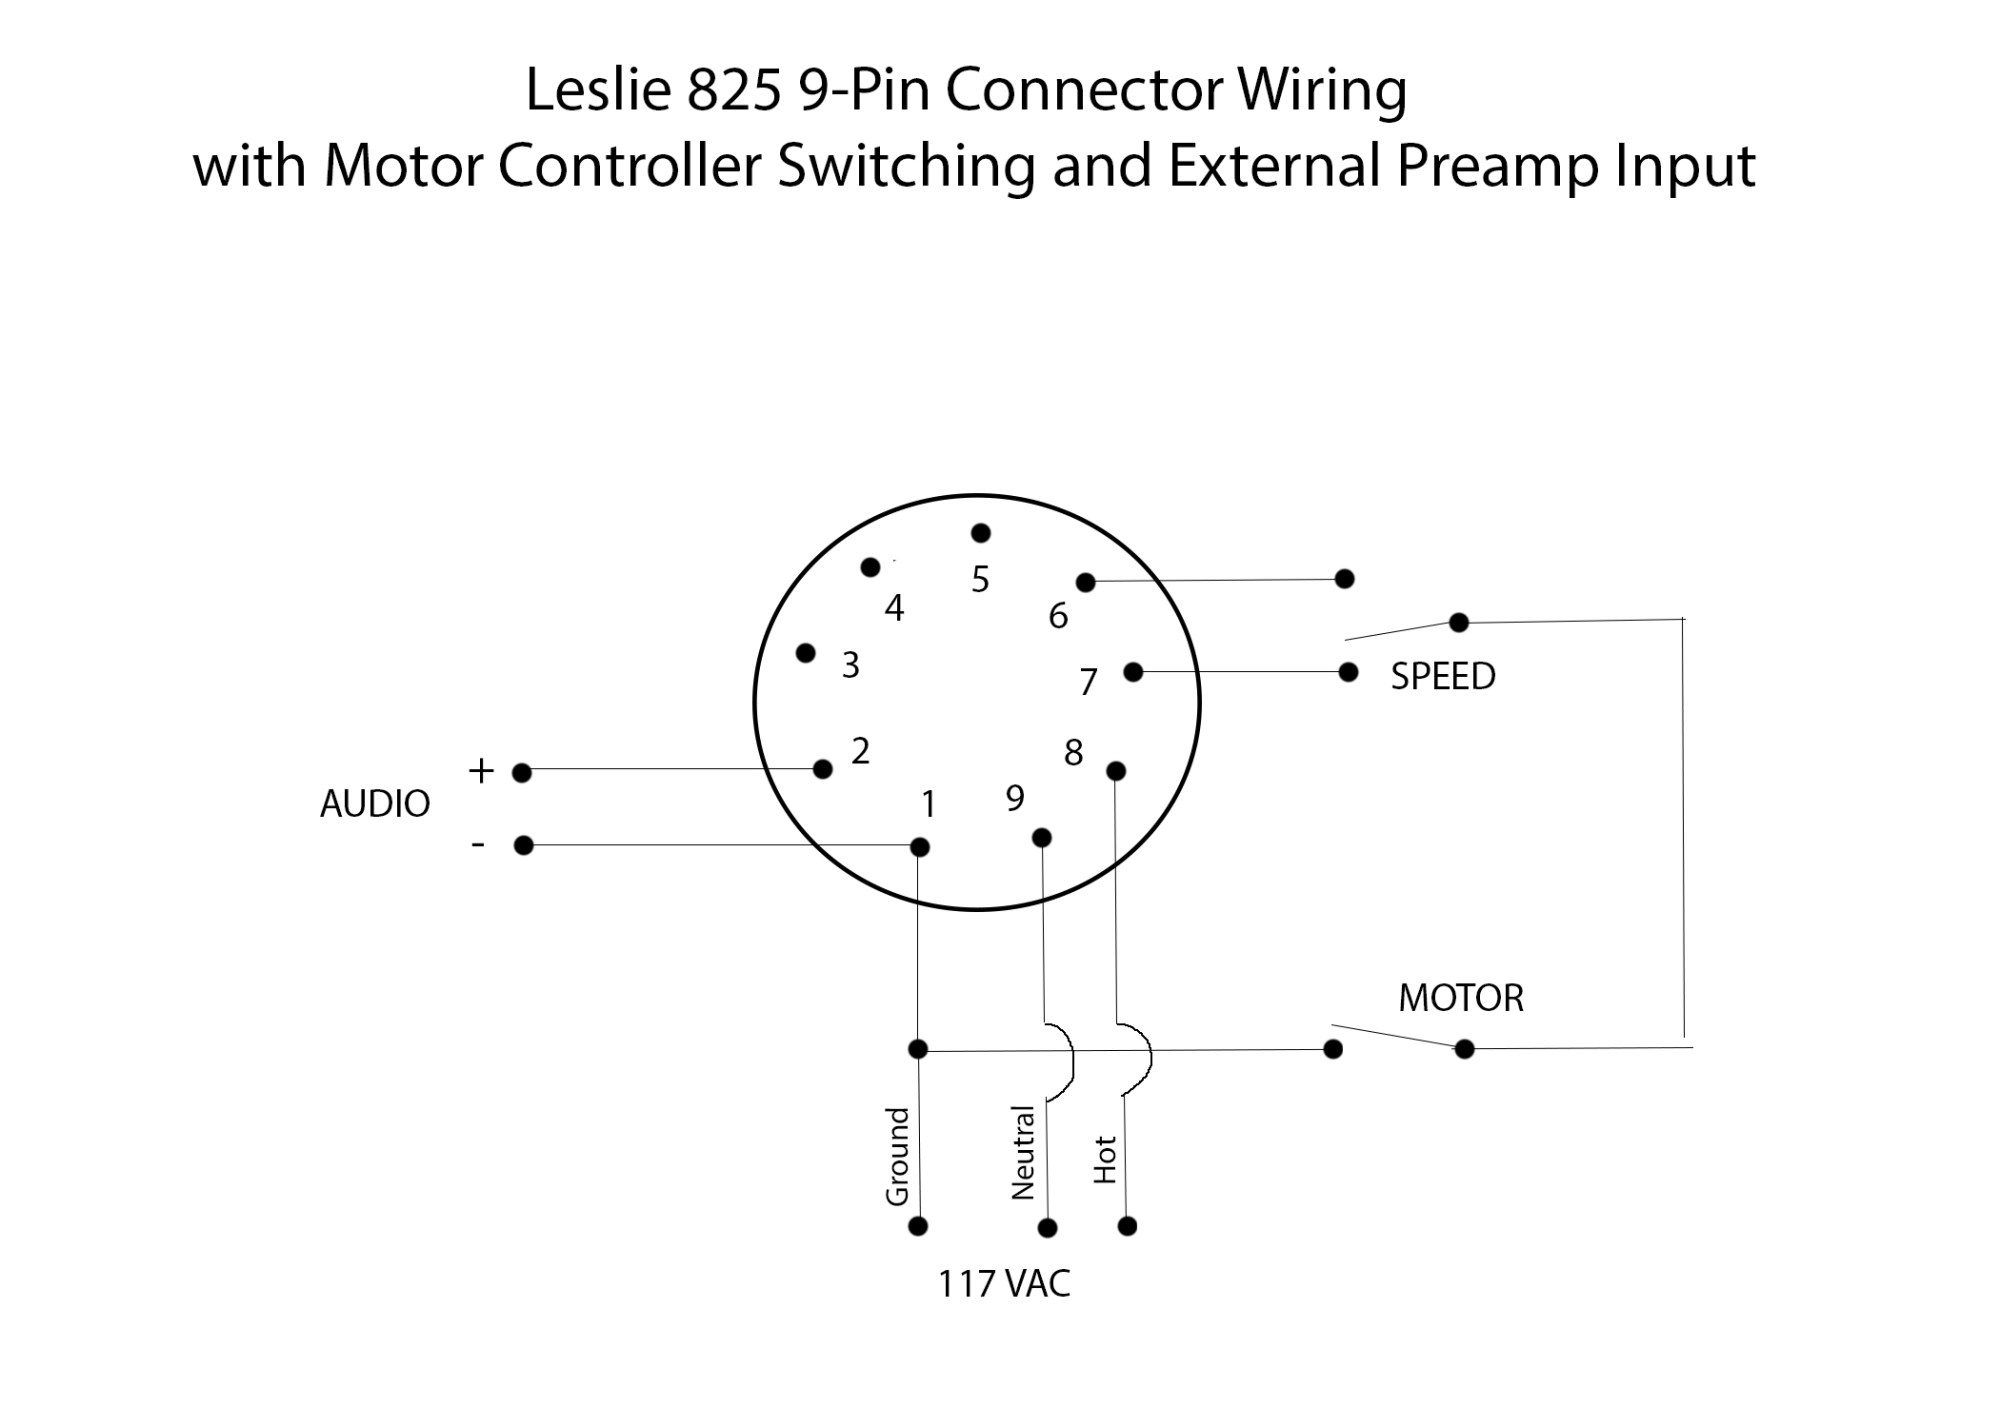 hight resolution of leslie 825 9 pin connector wiring with motor controller switching and external preamp input